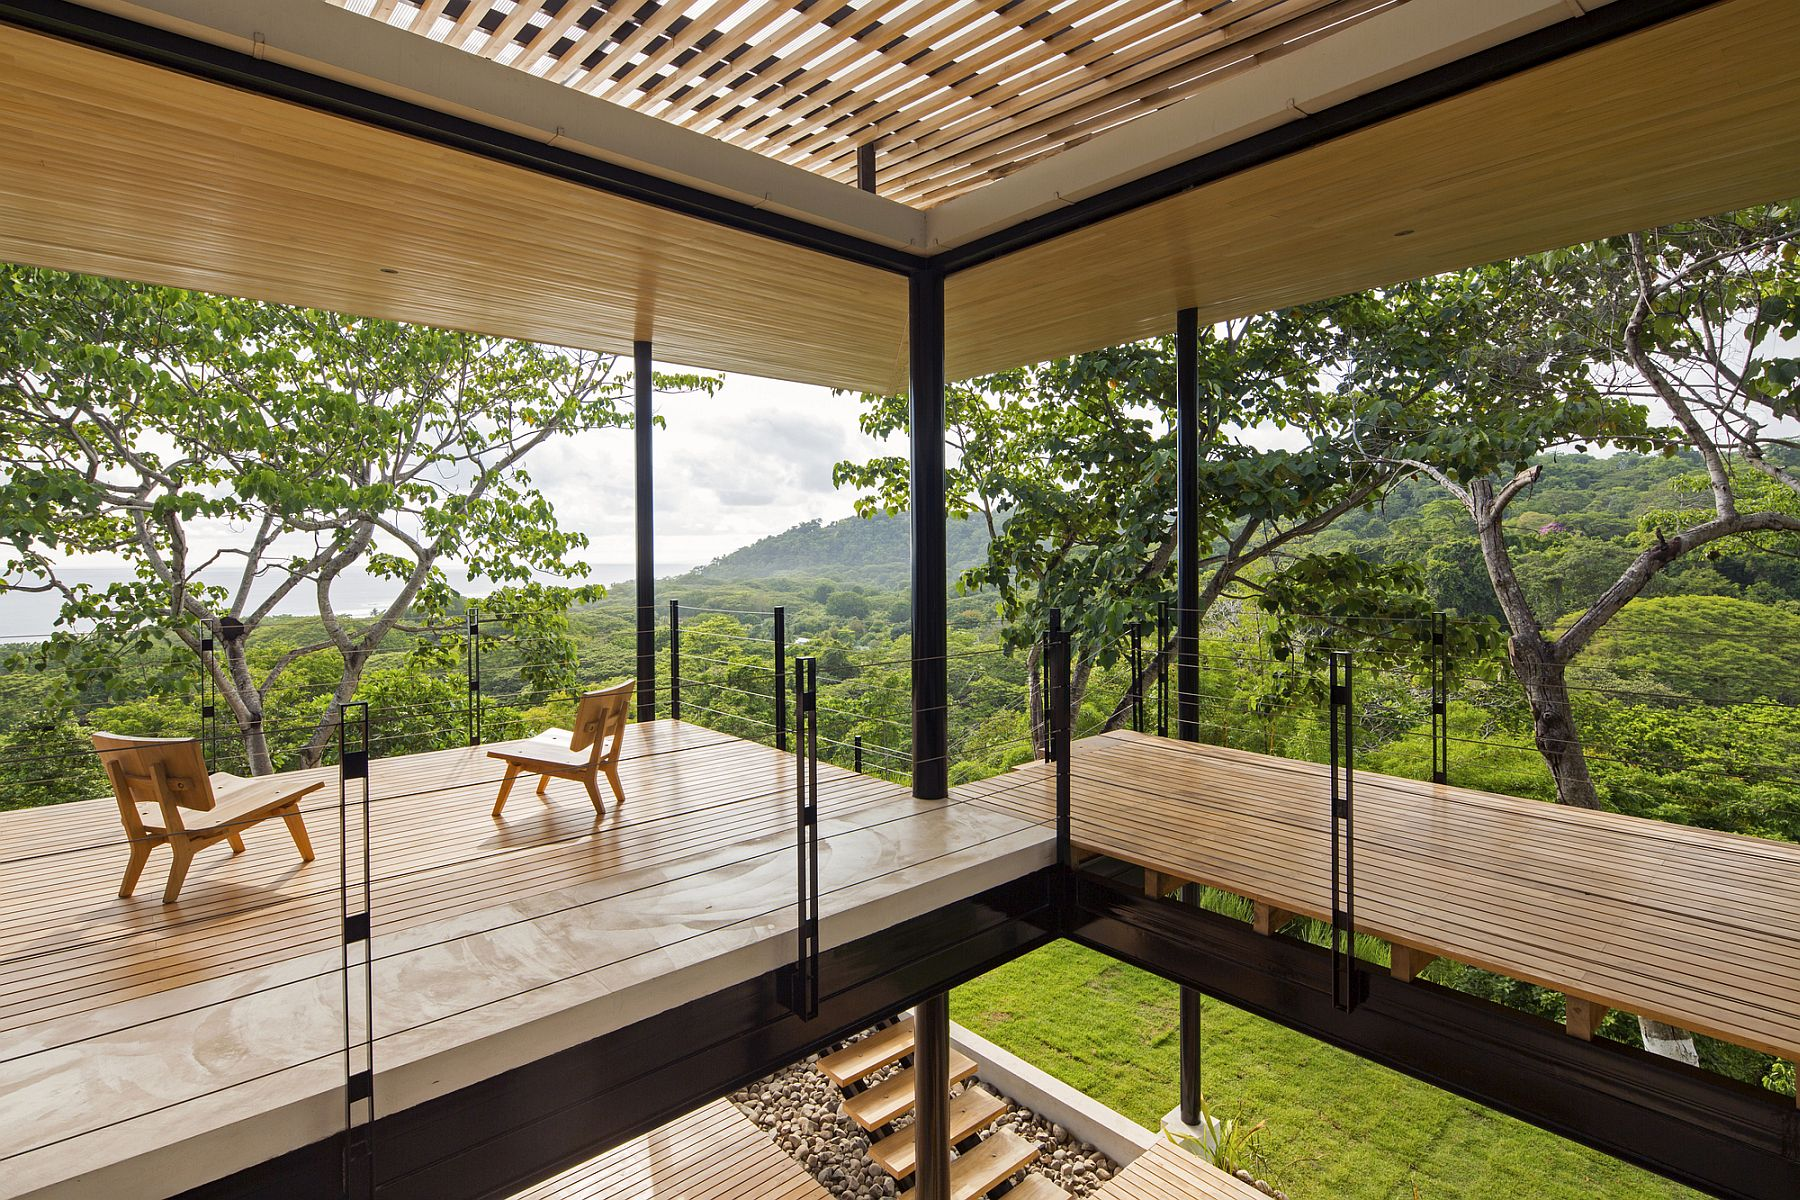 Gorgeous wooden terraces bring the forest scenery indoors